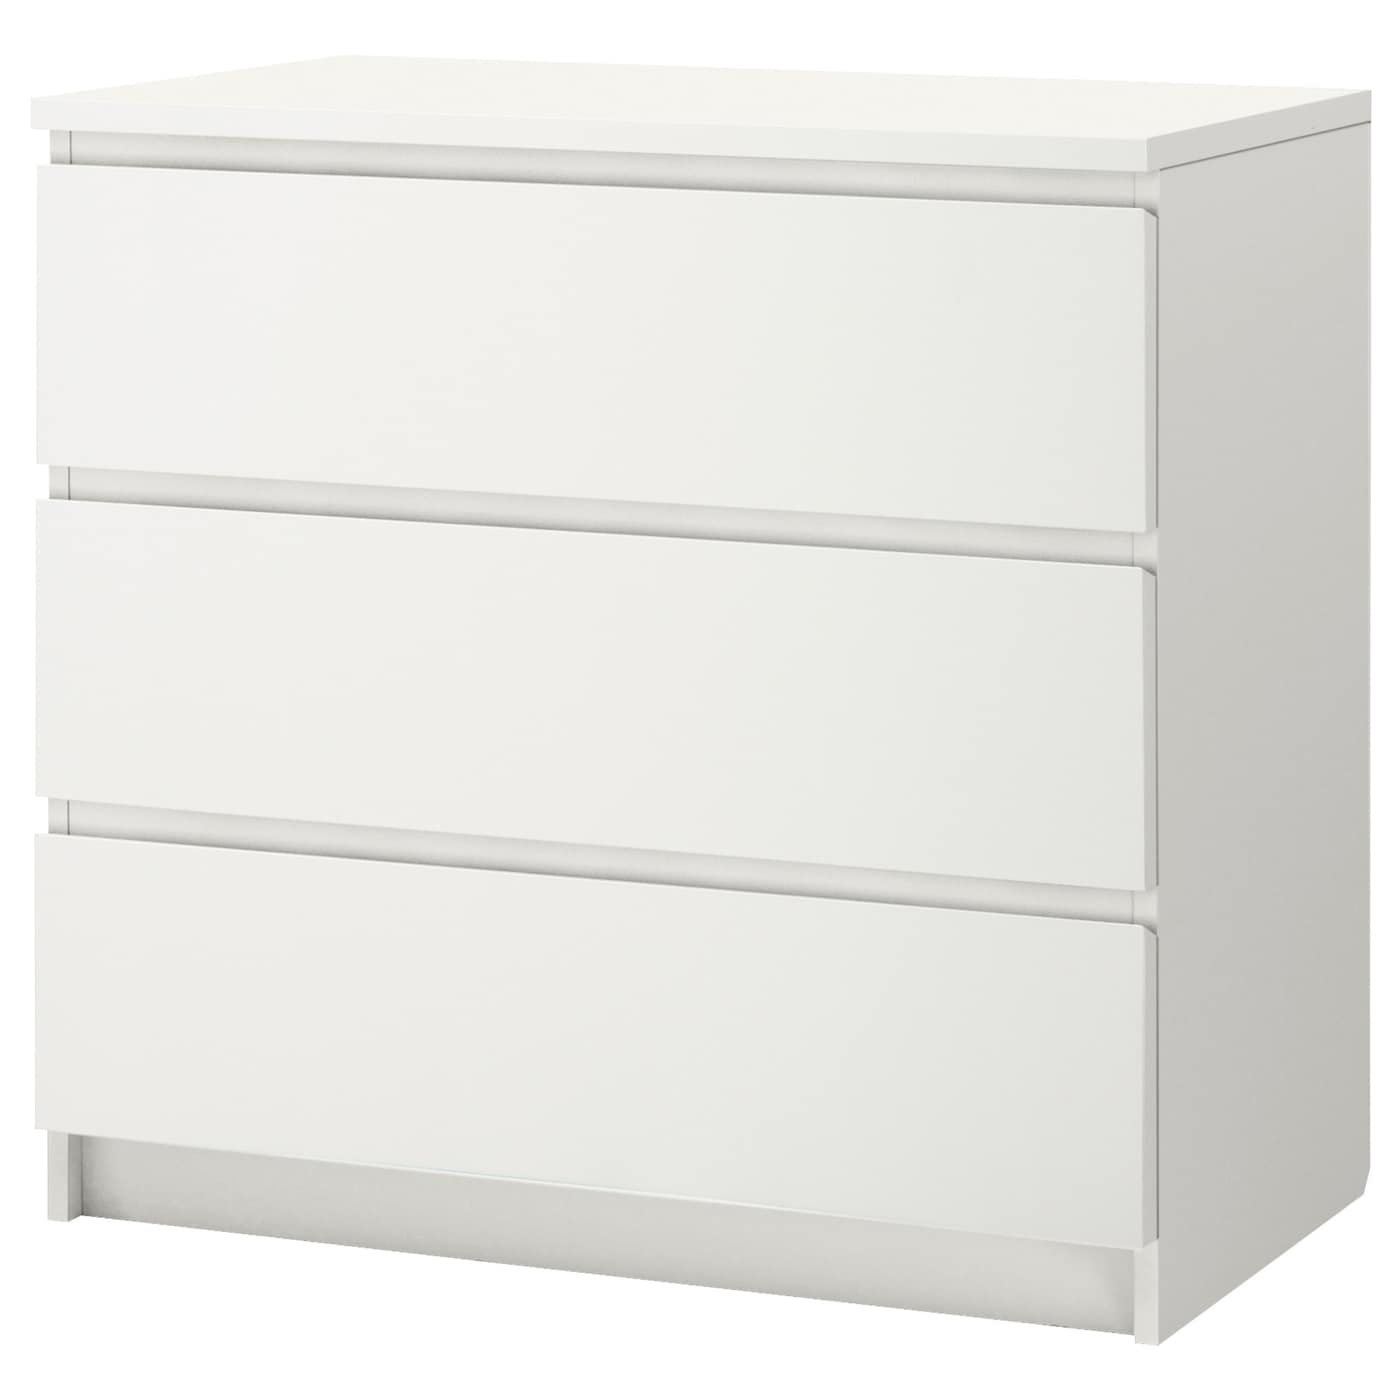 malm chest of 3 drawers white 80 x 78 cm ikea. Black Bedroom Furniture Sets. Home Design Ideas